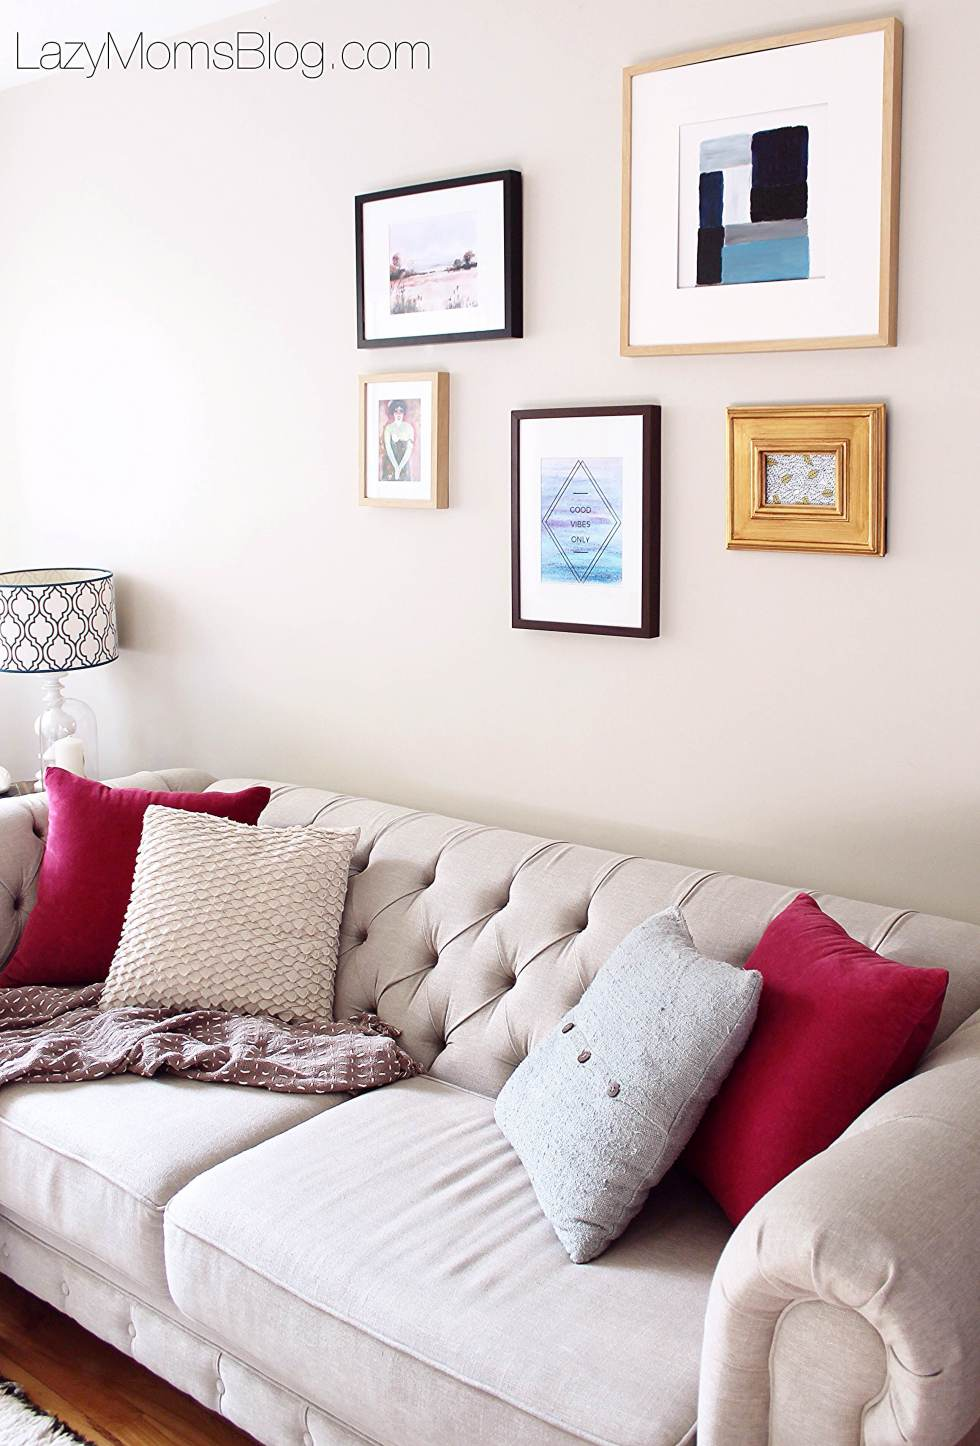 easy ways to decorate your living room, and on a bugdet too1 best tip: use free printables! like these here!